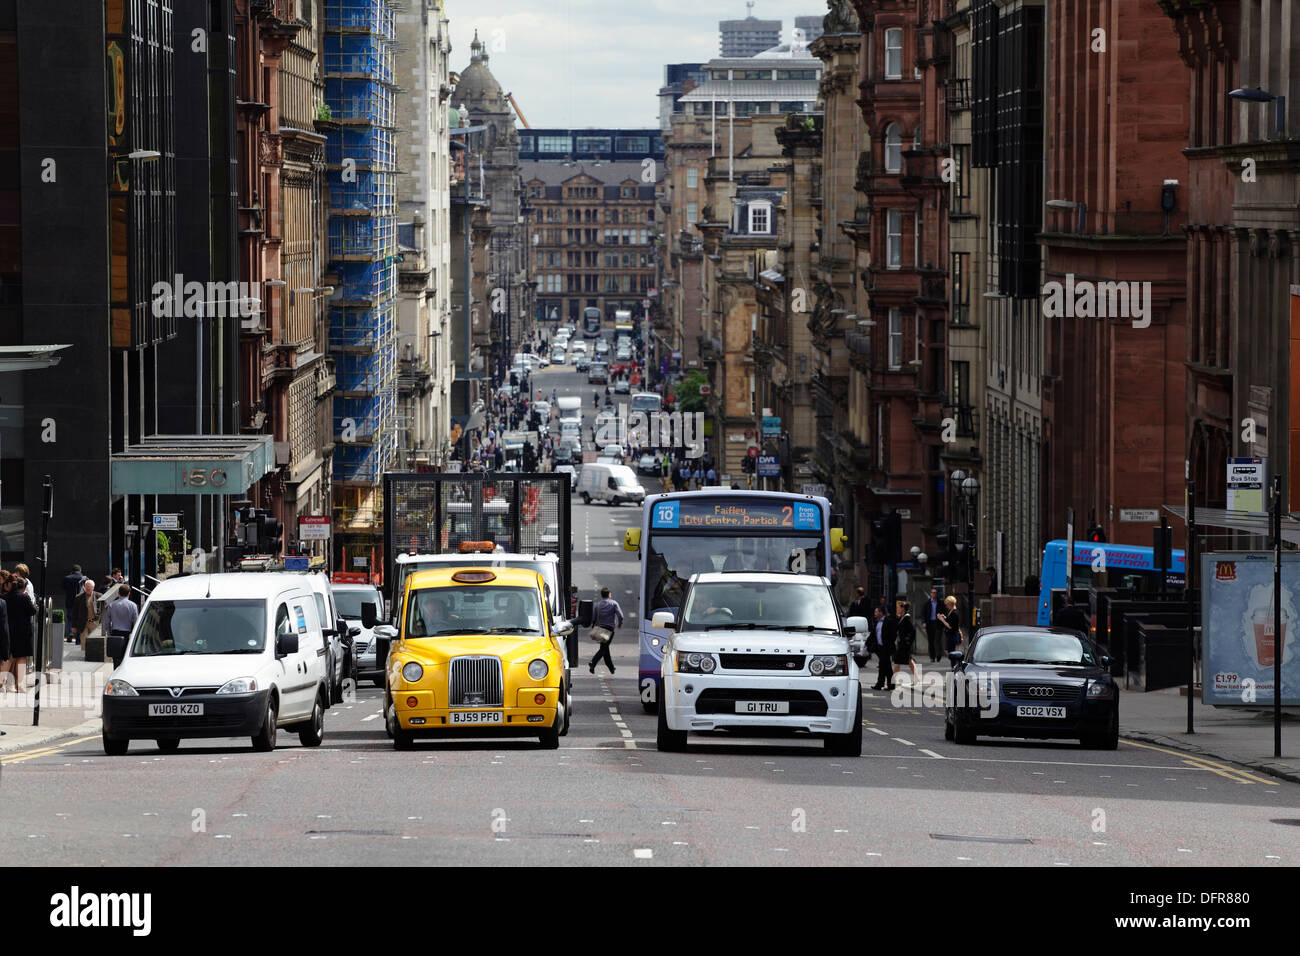 View looking East down St Vincent Street in Glasgow city centre, Scotland, UK Stock Photo